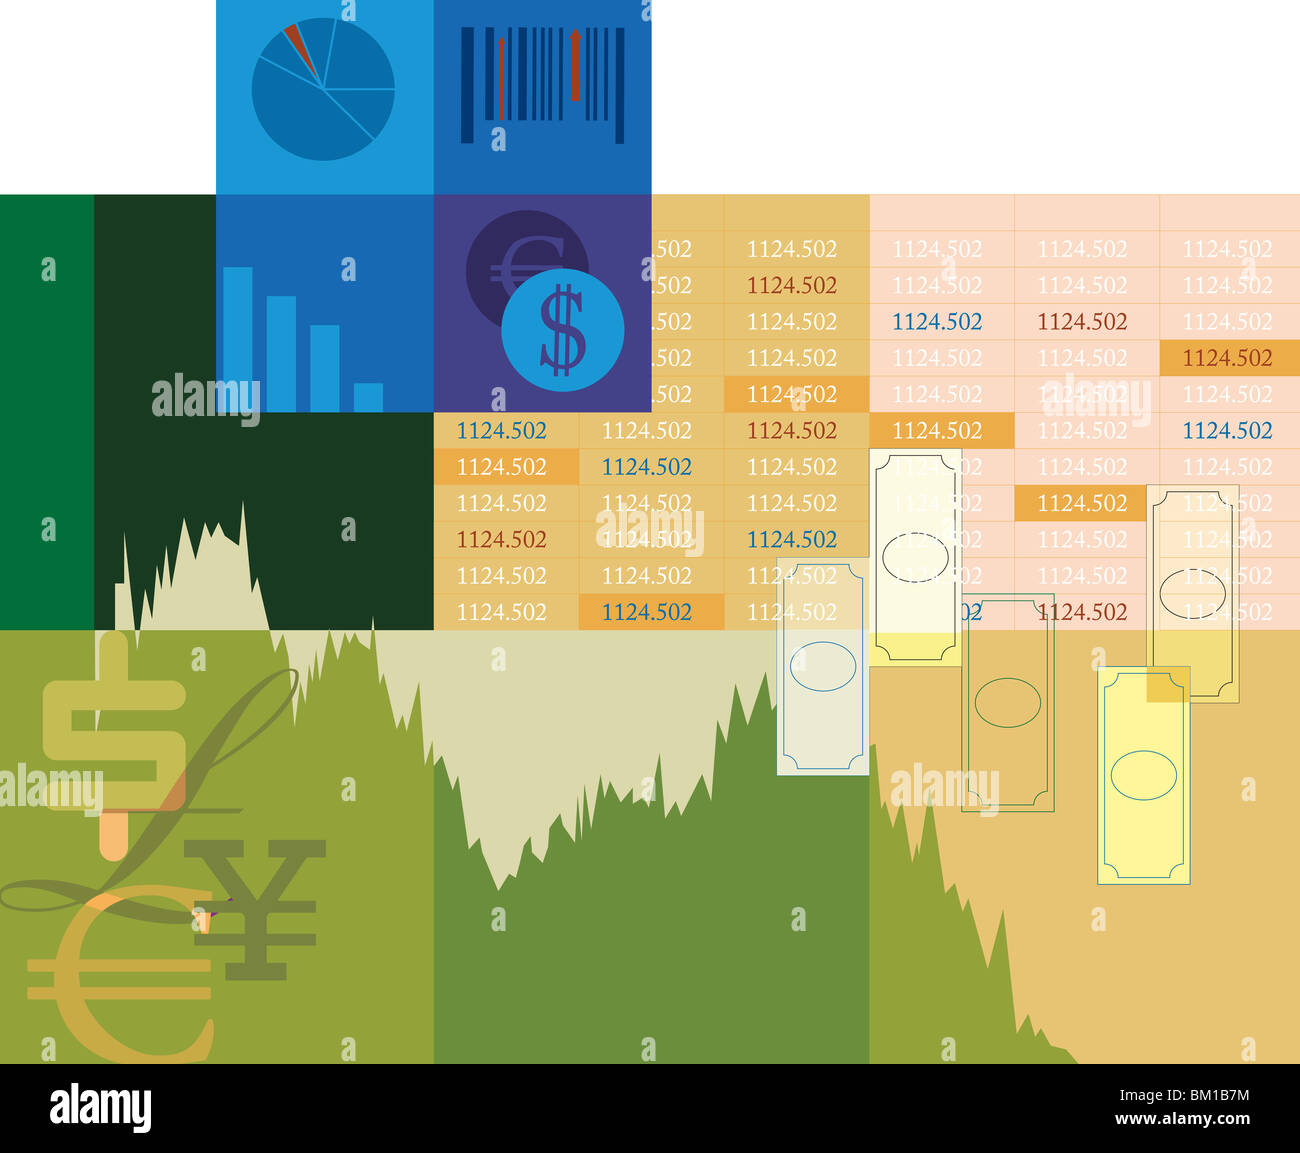 Illustrative representation of stock trading - Stock Image